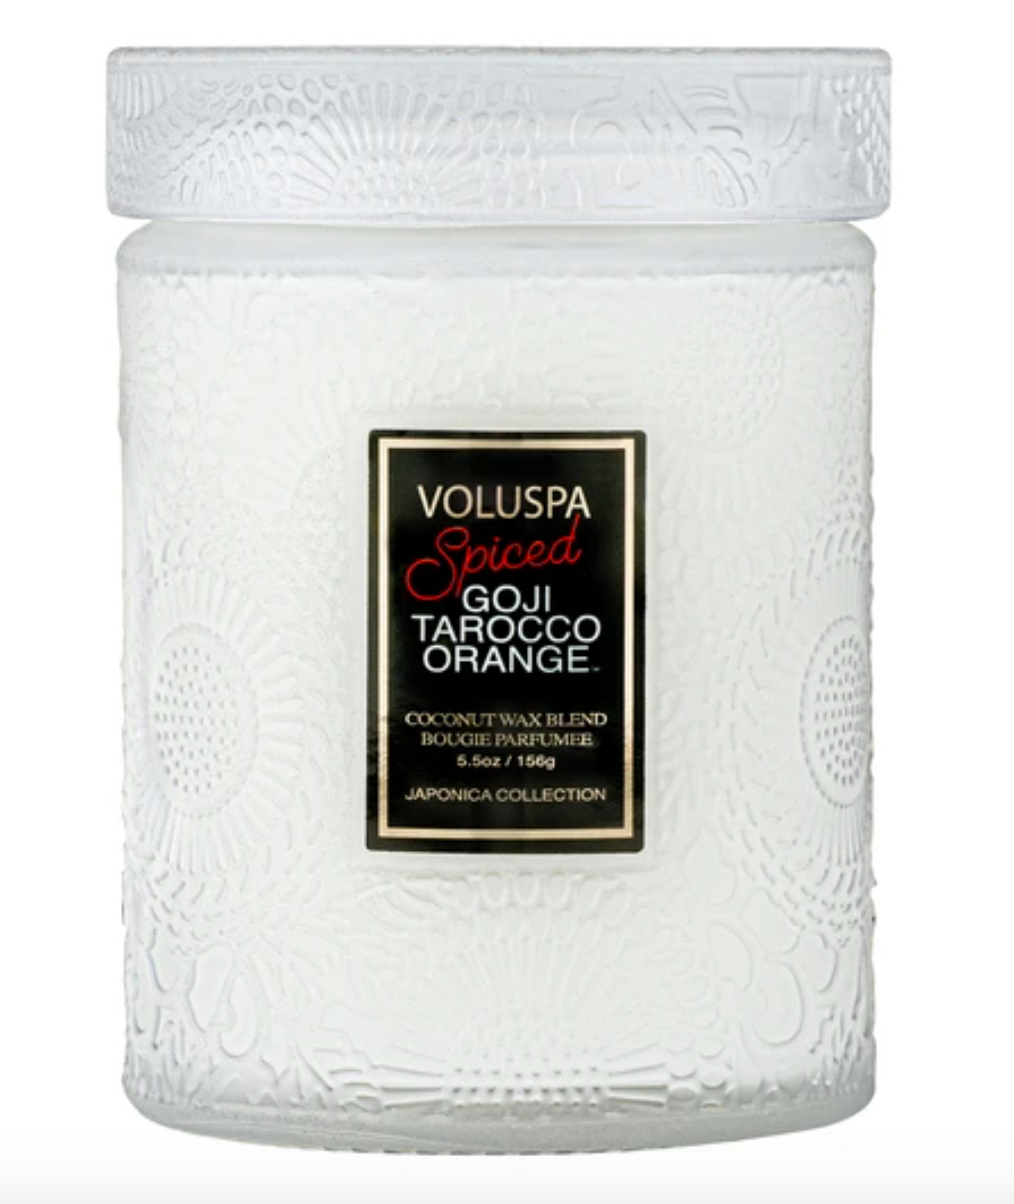 Voluspa 5.5 oz Spiced Goji Tarocco Orange Small Jar Candle